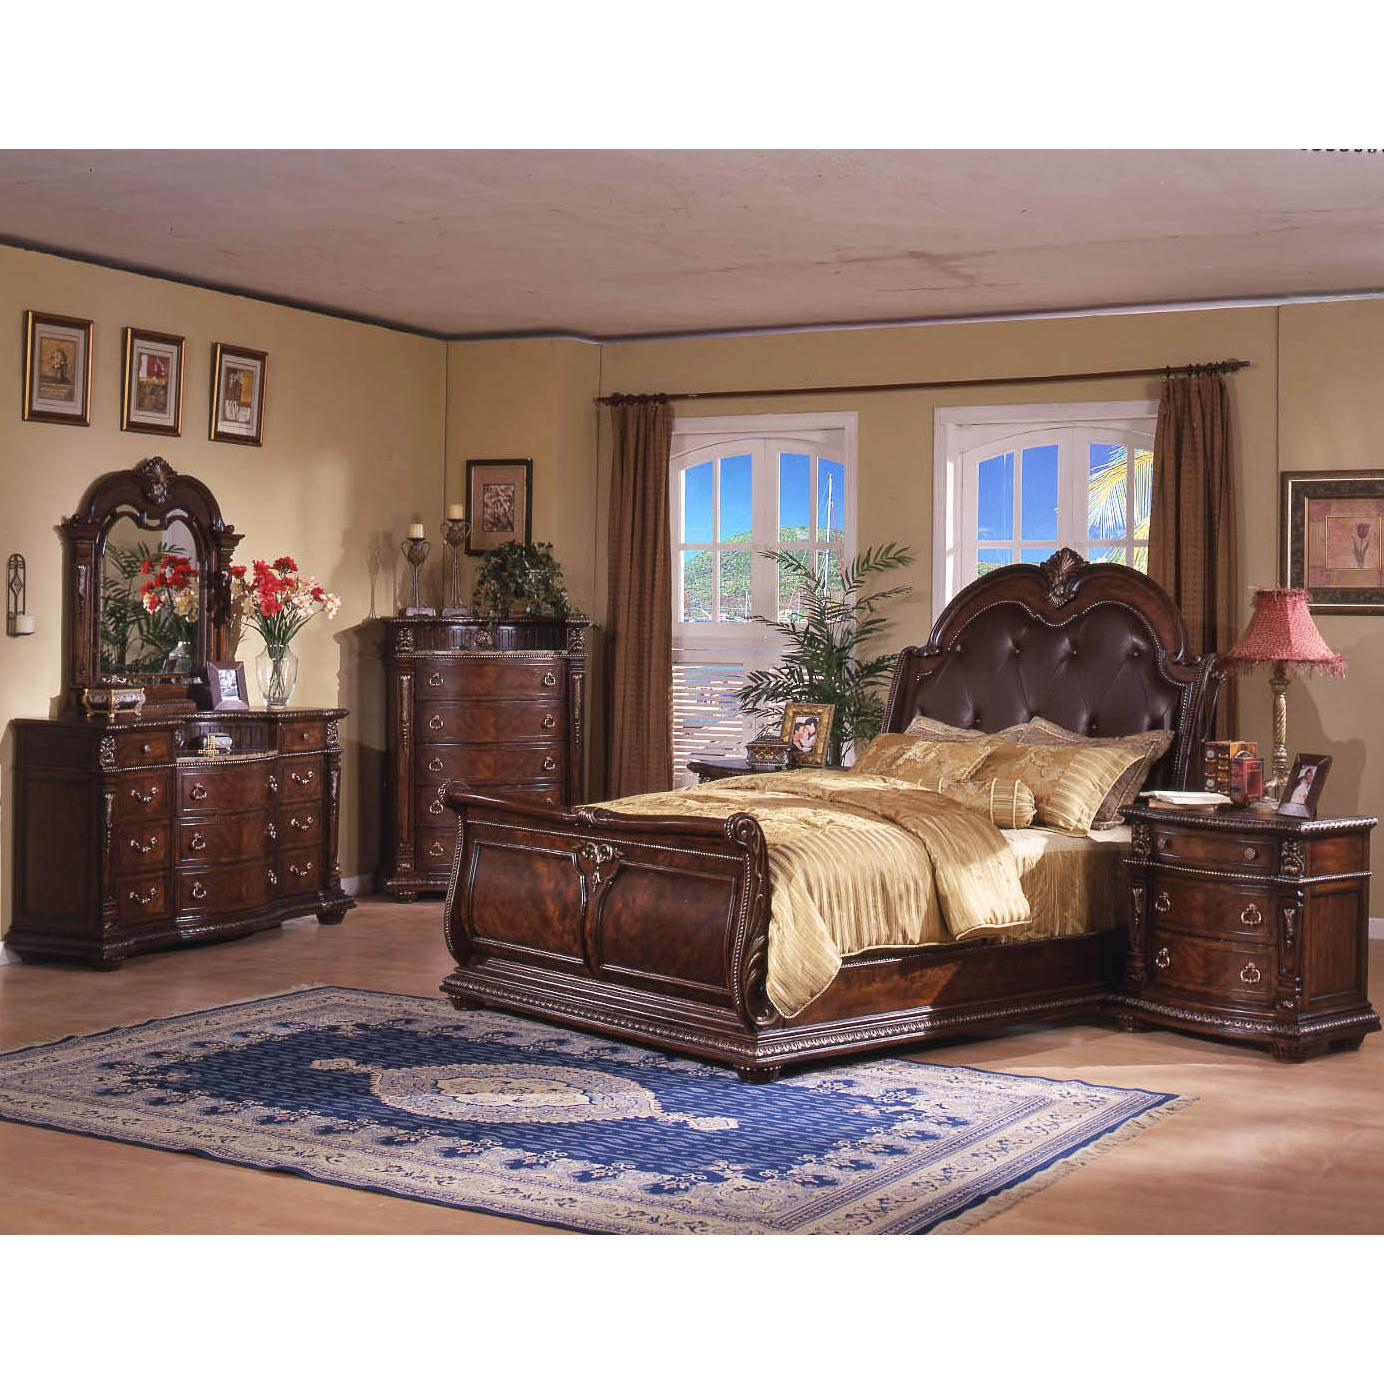 Leather Sofa Repairs In Coventry: Davis Direct Coventry Traditional California King Sleigh